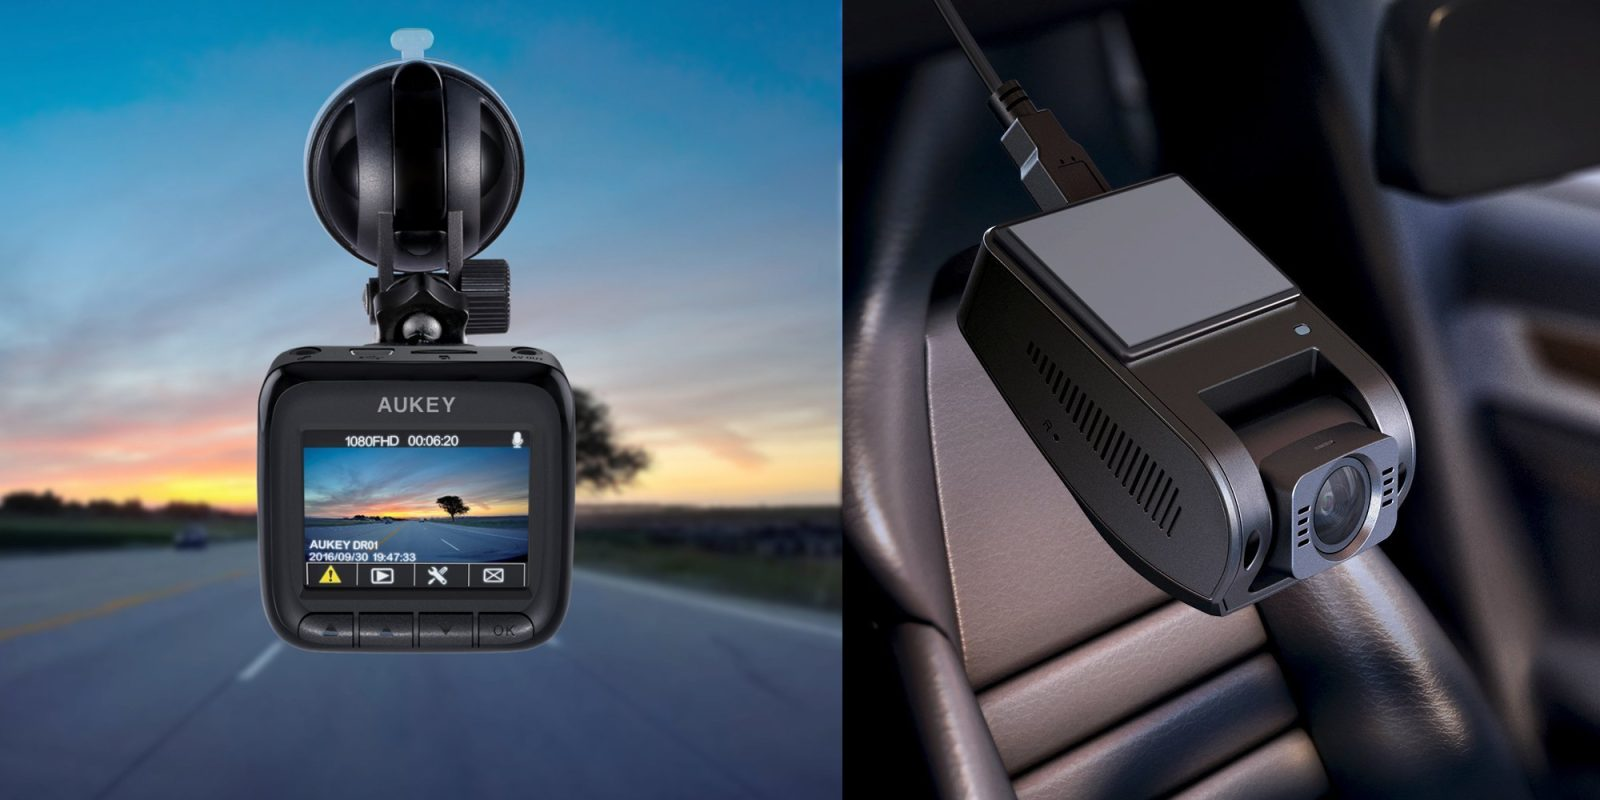 These Aukey Dash Cams record 6 lanes of traffic w/ 1080p or 4K sensors, starting at $48